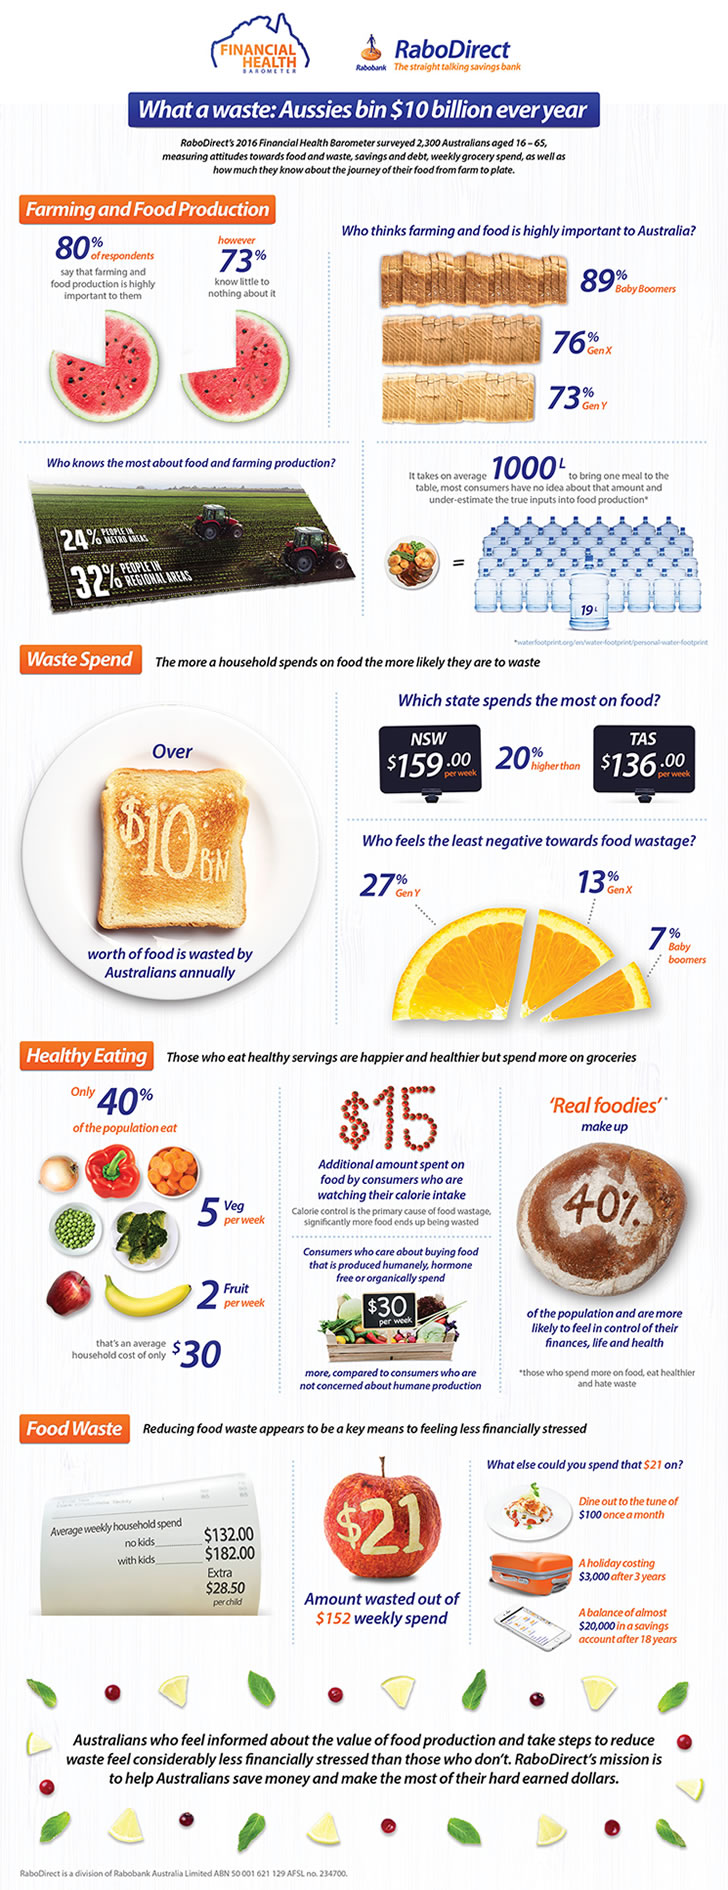 RaboDirect Financial Health Barometer 2016 - Food and Farming Infographic